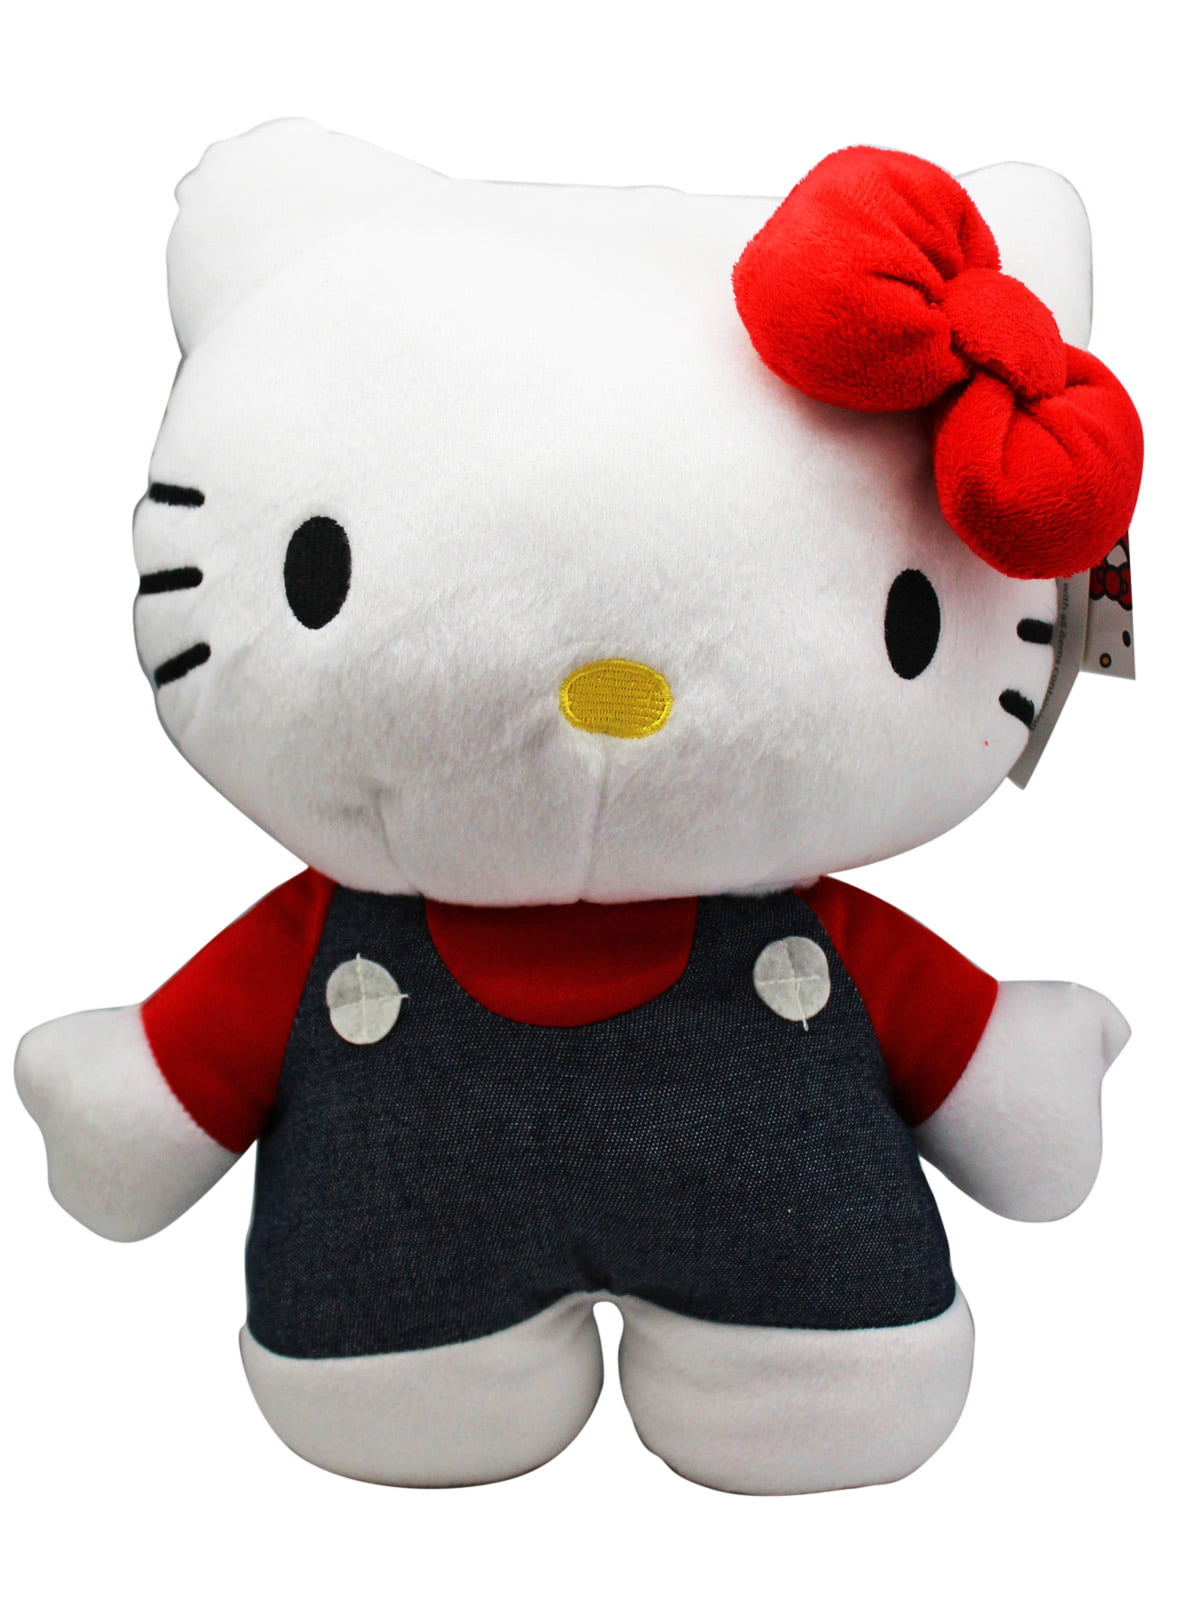 Sanrio's Hello Kitty Plush Toy With Overalls and a Secret Zipper Pocket (13in) by